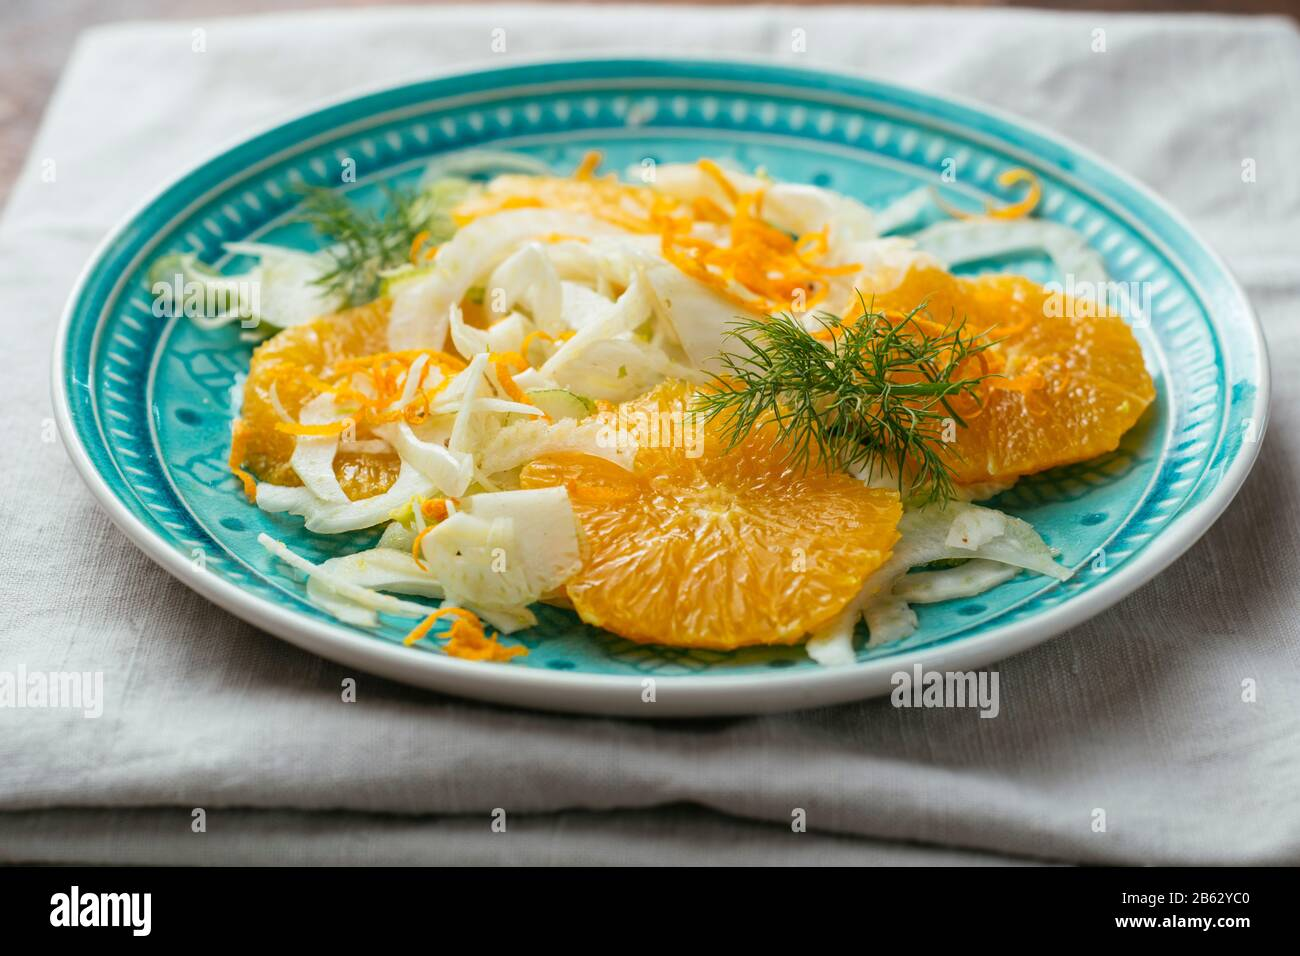 Plate with a healthy fennel and orange salad. Stock Photo